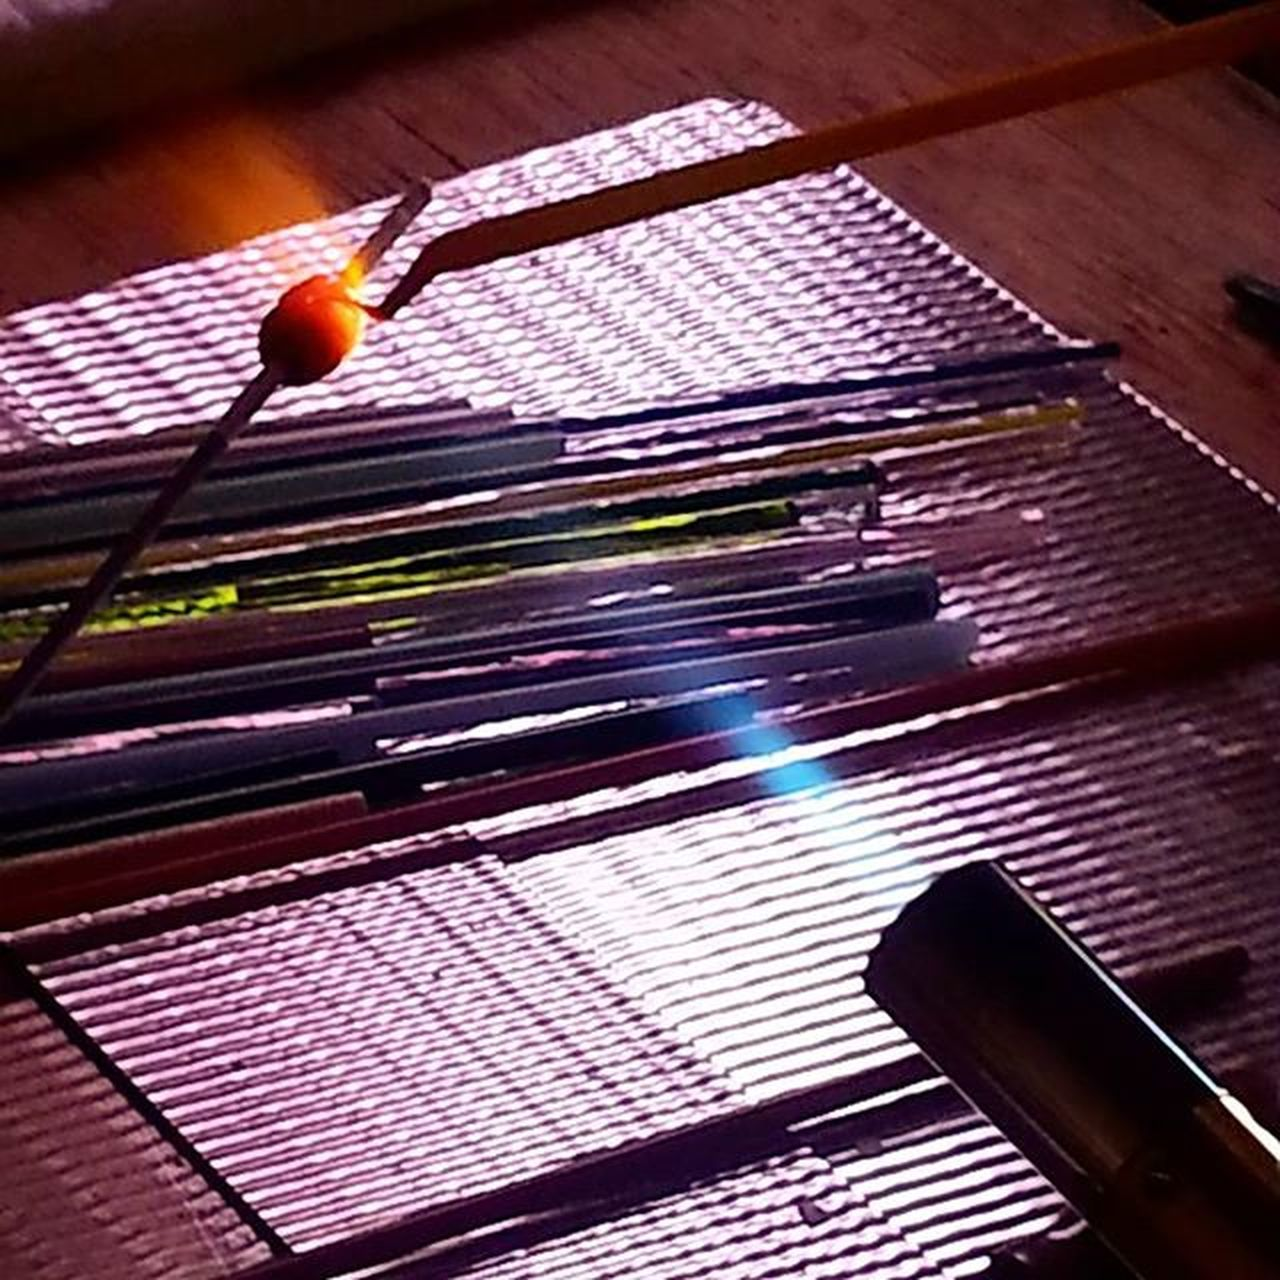 """Do something creative everyday."" This is a glass bead in its infancy. With care, attention, and a bit of fire, it will grow into something beautiful! Nowbeadthis Beads * Handmadejewelry * Beading Crafty Craft Crafts * Madeinusa Madeinarizona Lampworked Beads Lampwork Torch Workbench Glass Art Glass Rods Torching Glass Glass Artistry Glass Artist Glass Artwork Artist's Workshop Artist's Hands Glass Bead On Mandrel Glass Shaping Melting Glass Molten Glass"